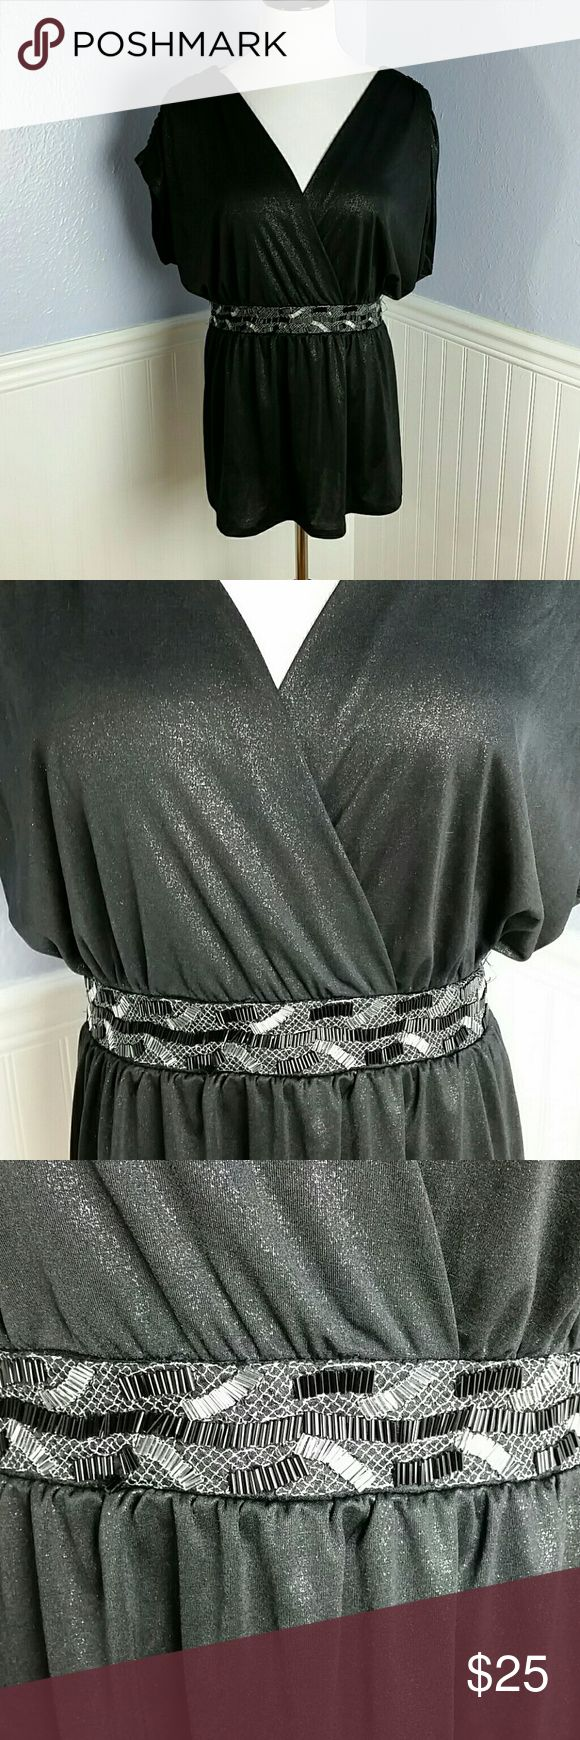 """Torrid Beaded Waist Faux Wrap Top - Torrid Size 0 Perfect top for date night or girls night out  Black silky material with all over silver sparkle.  Beaded Waist band. Faux wrap top, with empire waist and flattering babydoll bottom. Ruched kimono sleeves. Tie back waist. Back features T back style.  94% polyester,  6% spandex.  Length measures 30"""", bust measures 24"""" across,  waist measures 19"""" across.  Some beading missing on waist as shown in photo, one or two missing in other areas, but…"""